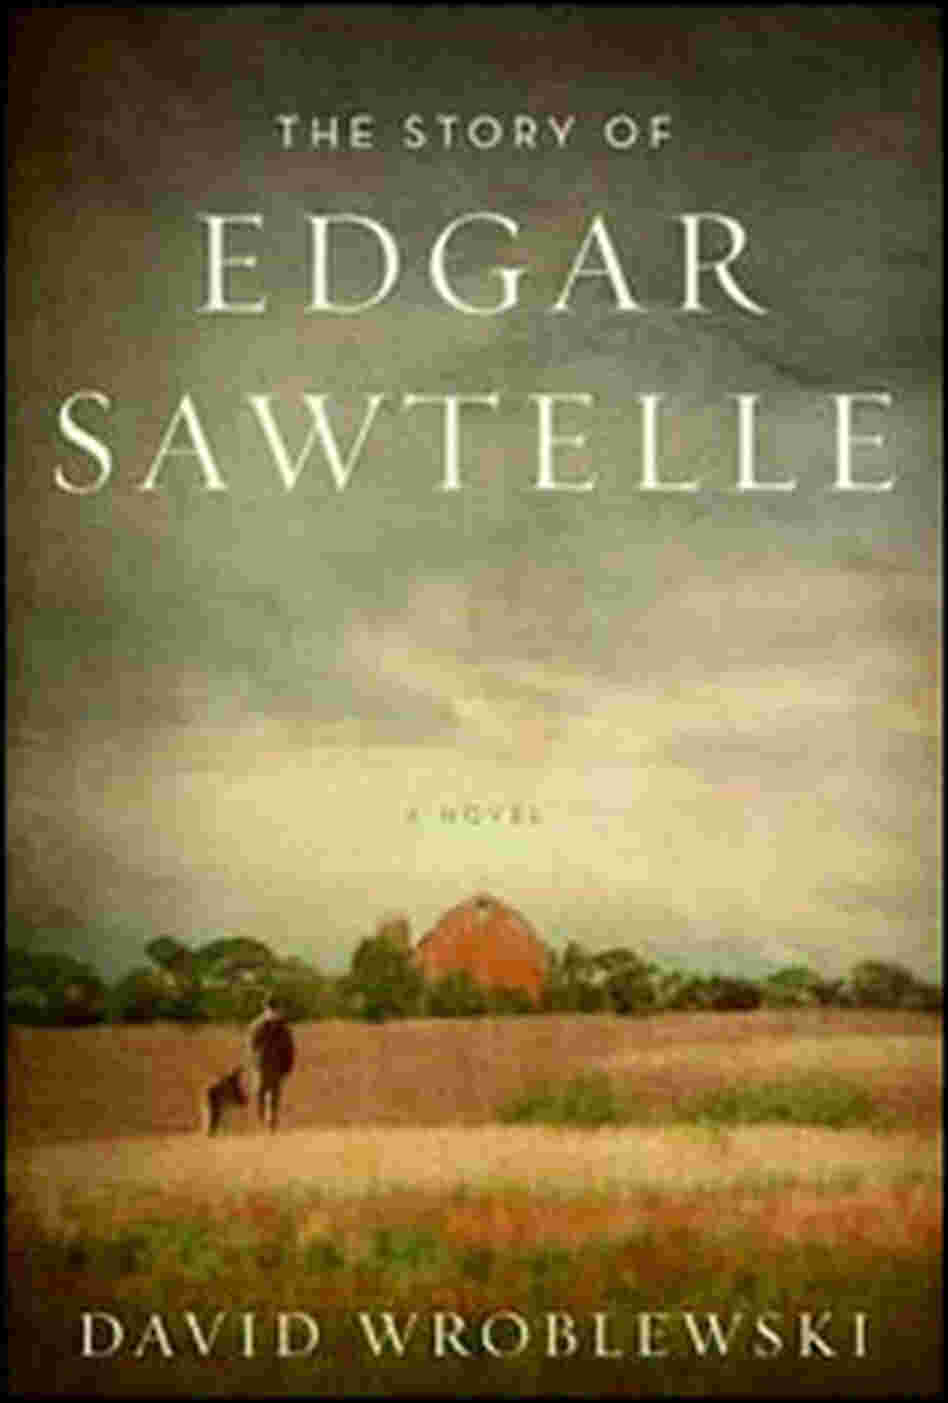 'The Story of Edgar Sawtelle'